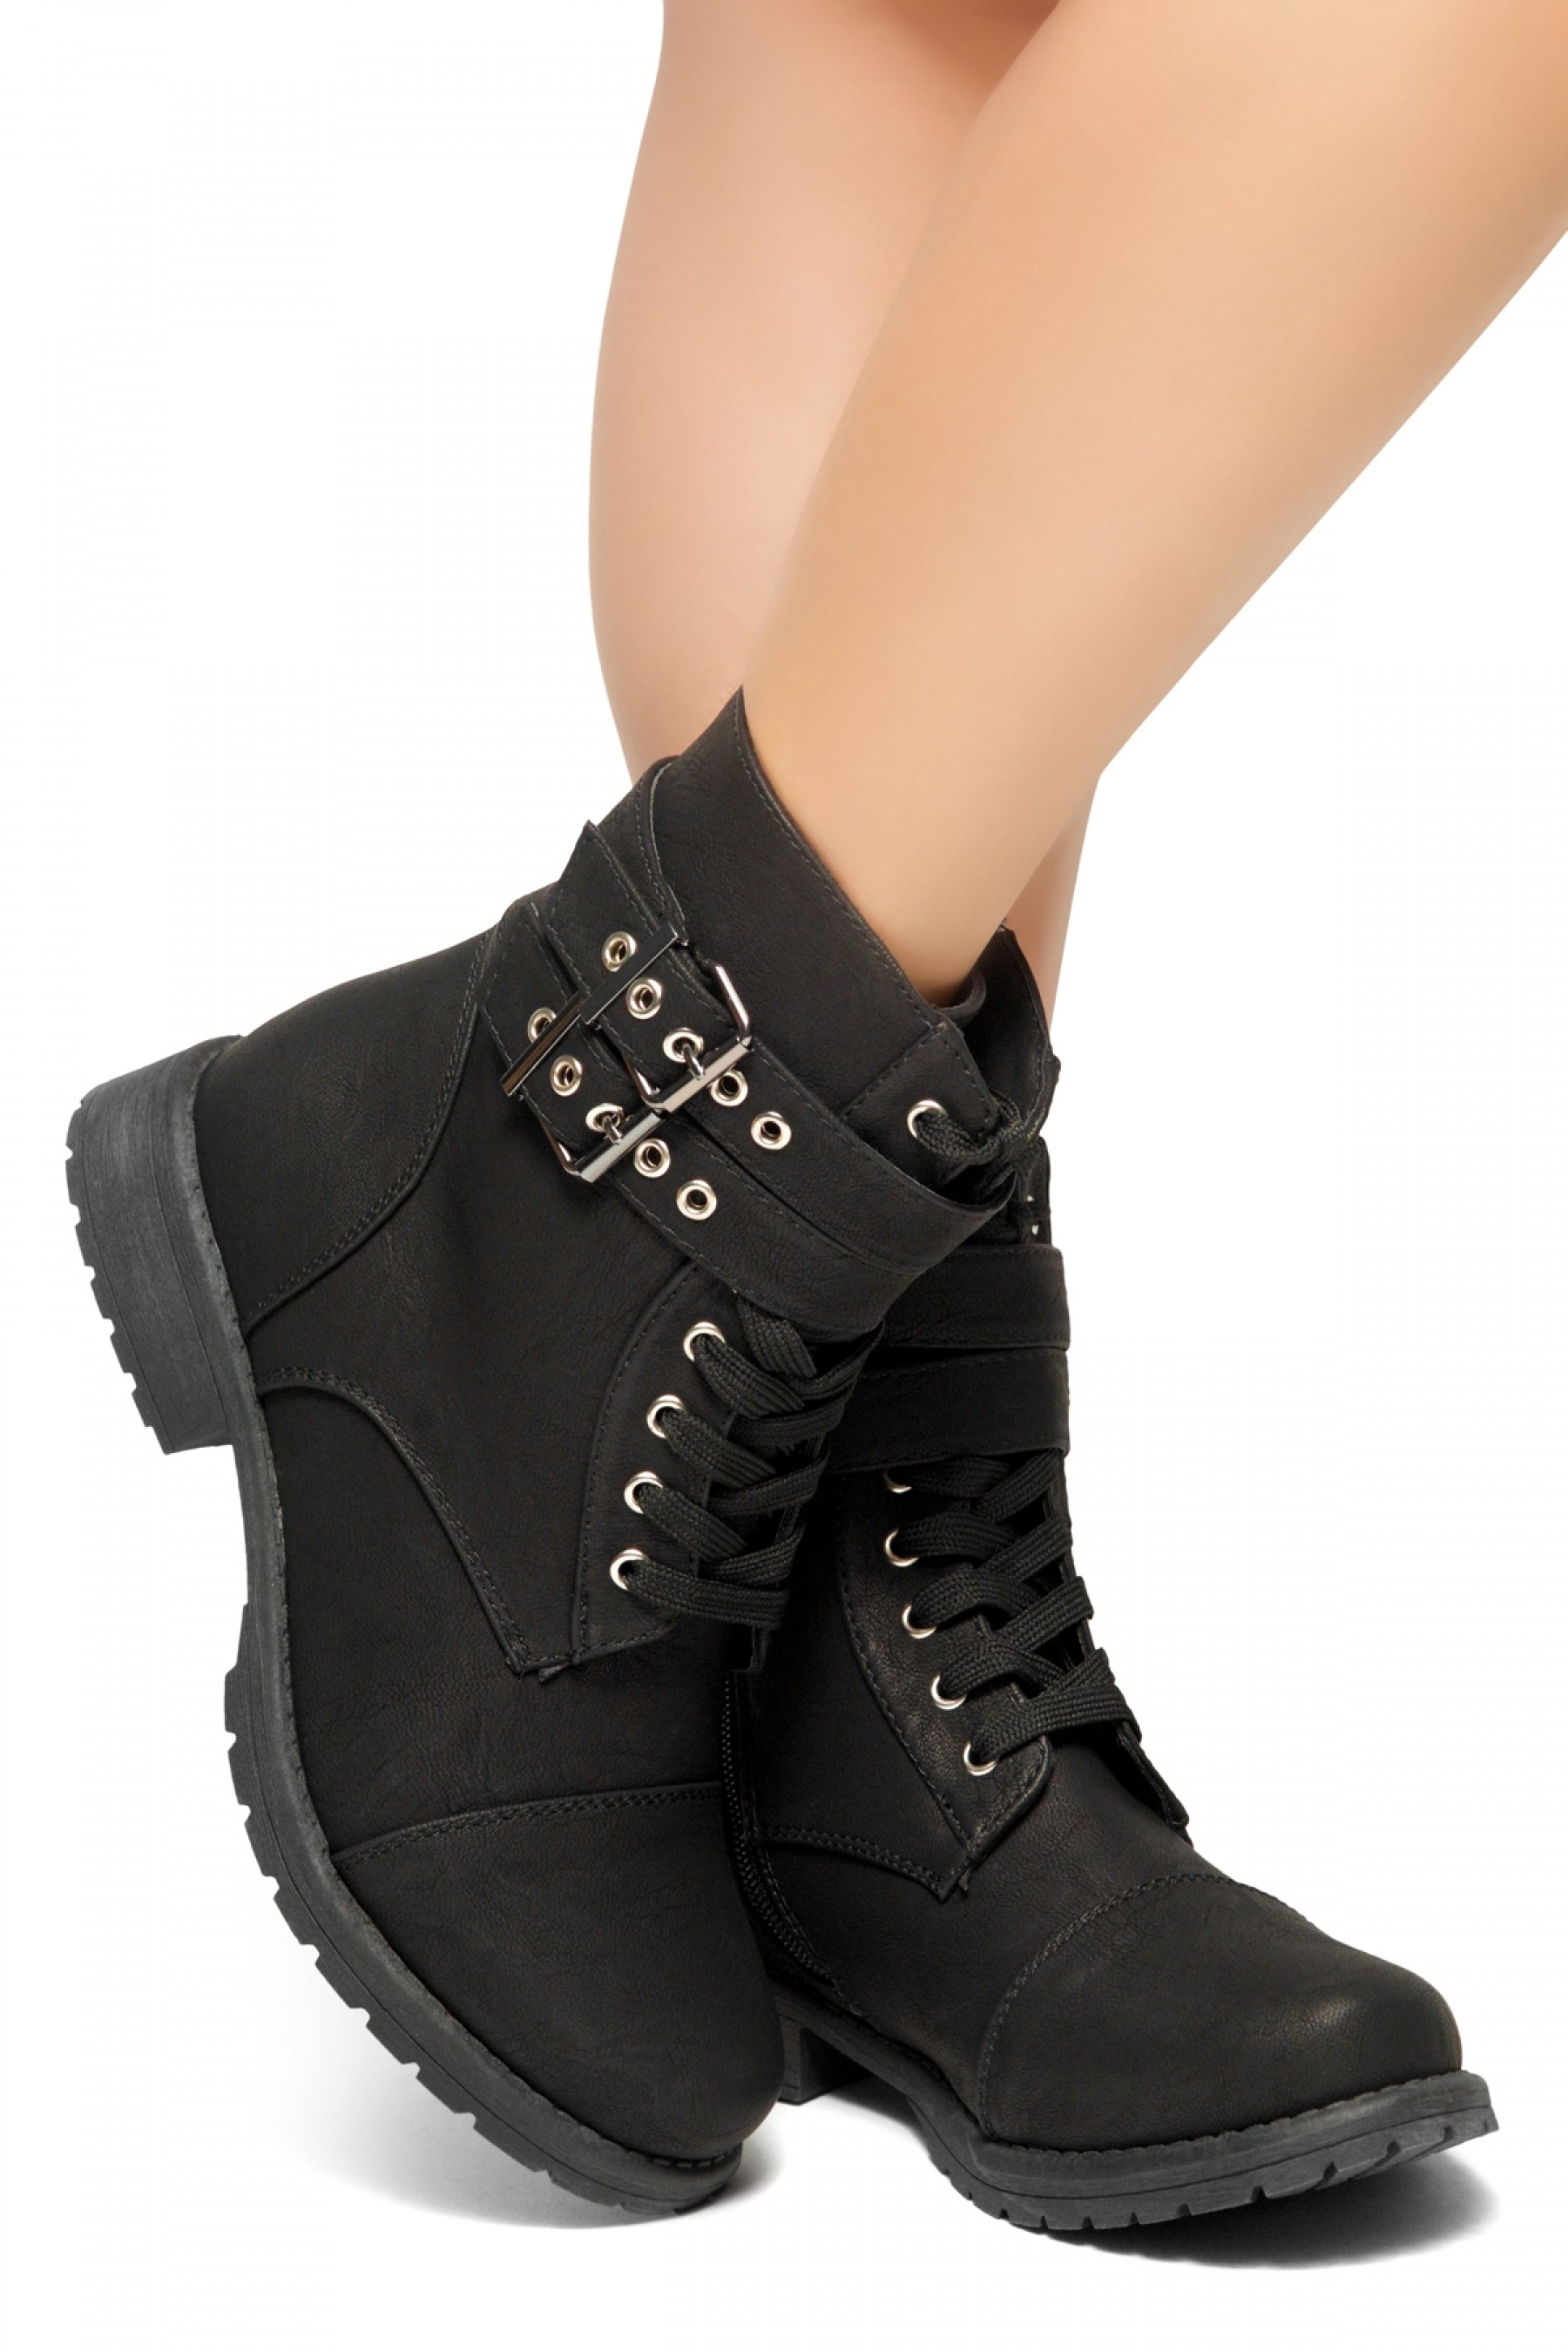 HerStyle Teen Sprit-Women's Military Ankle Lace Up Double Buckled Combat Booties (Black)